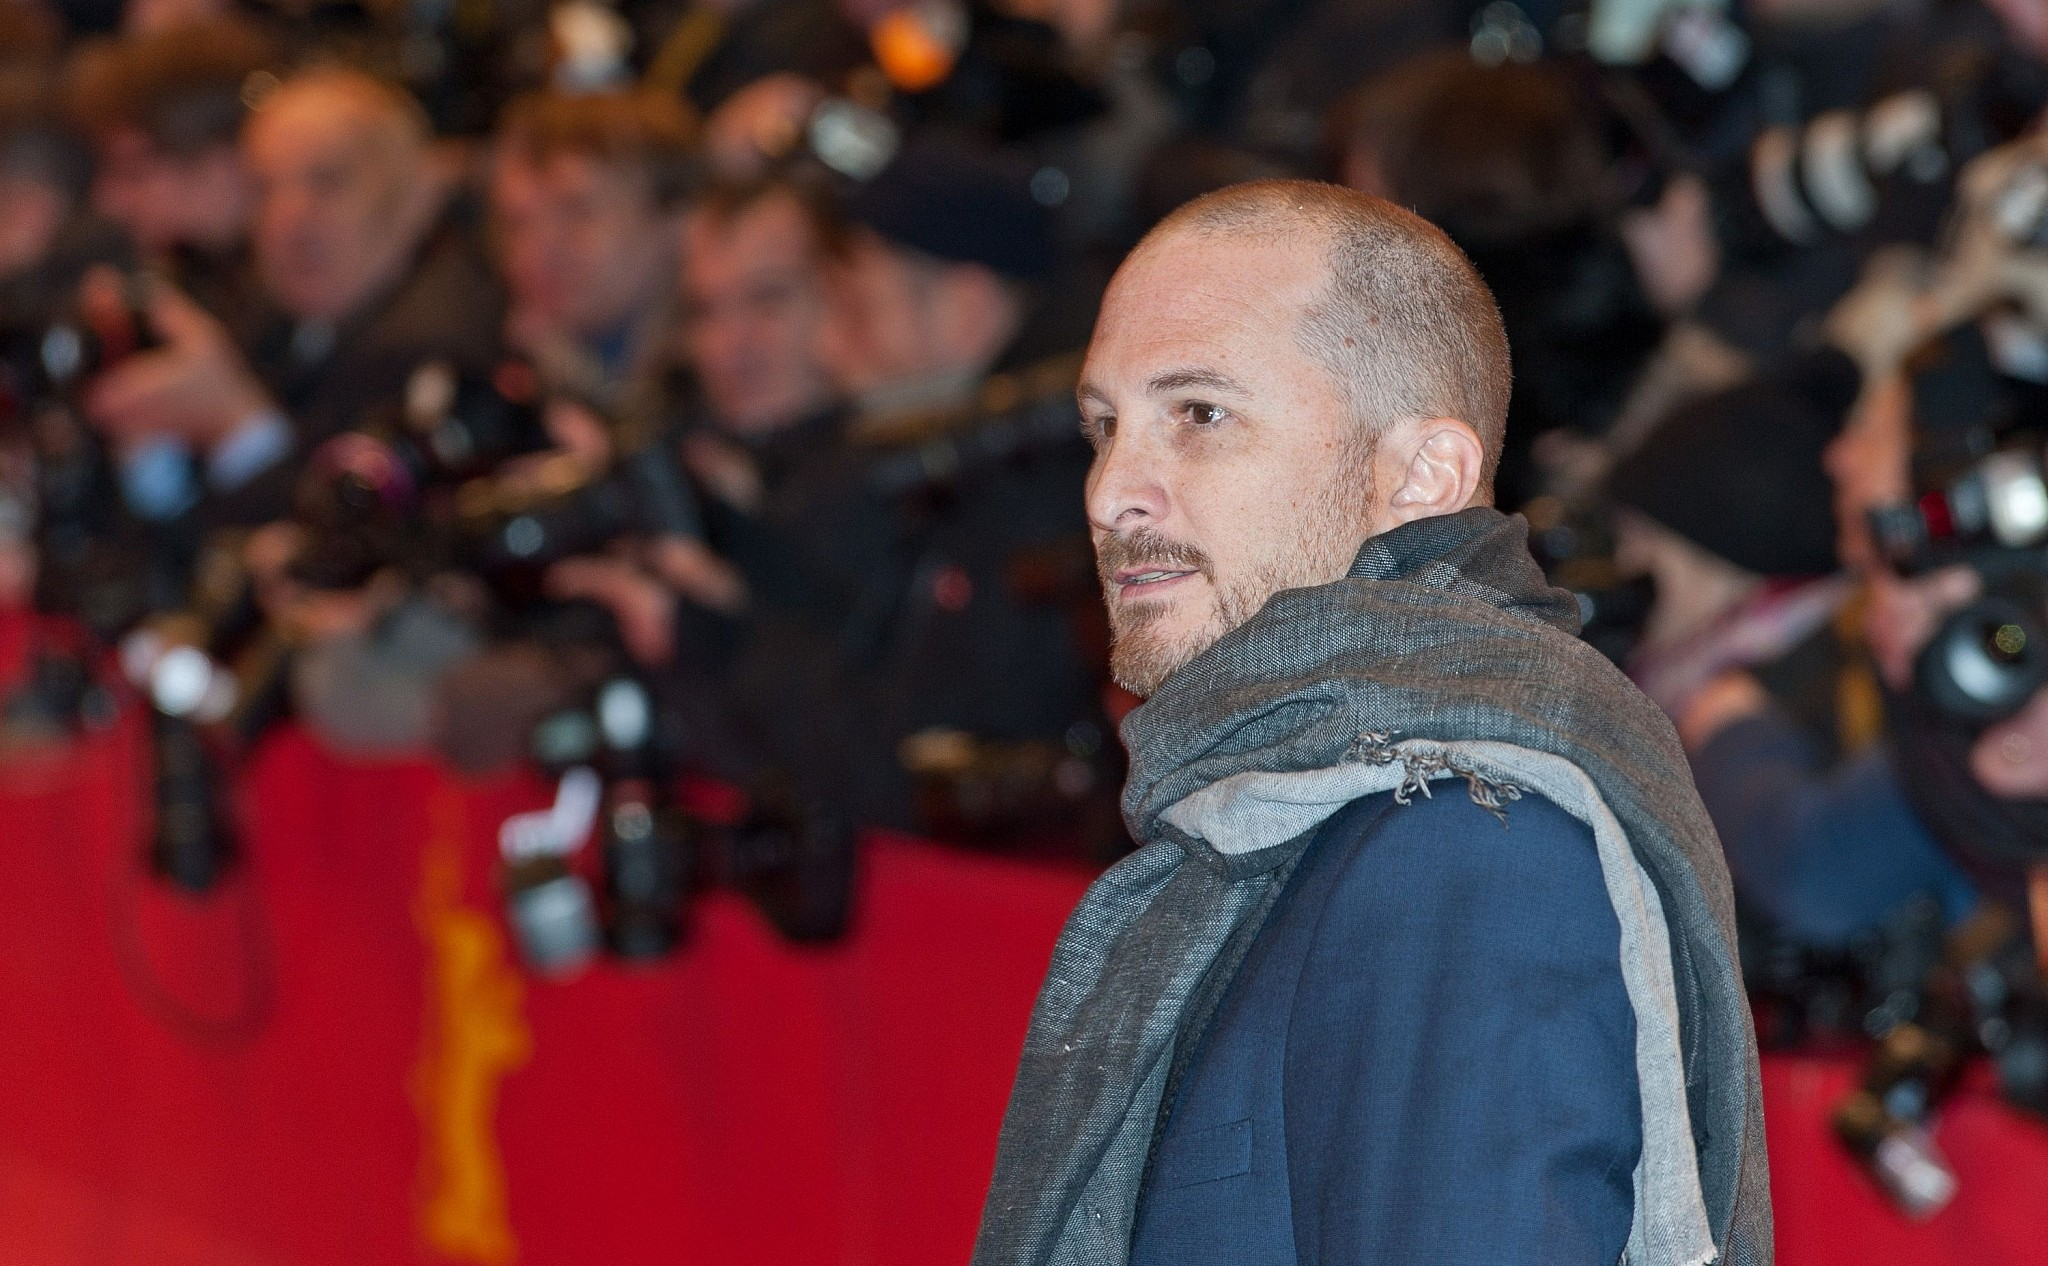 Director Darren Aronofsky at the opening of the Berlin Film Festival in 2015